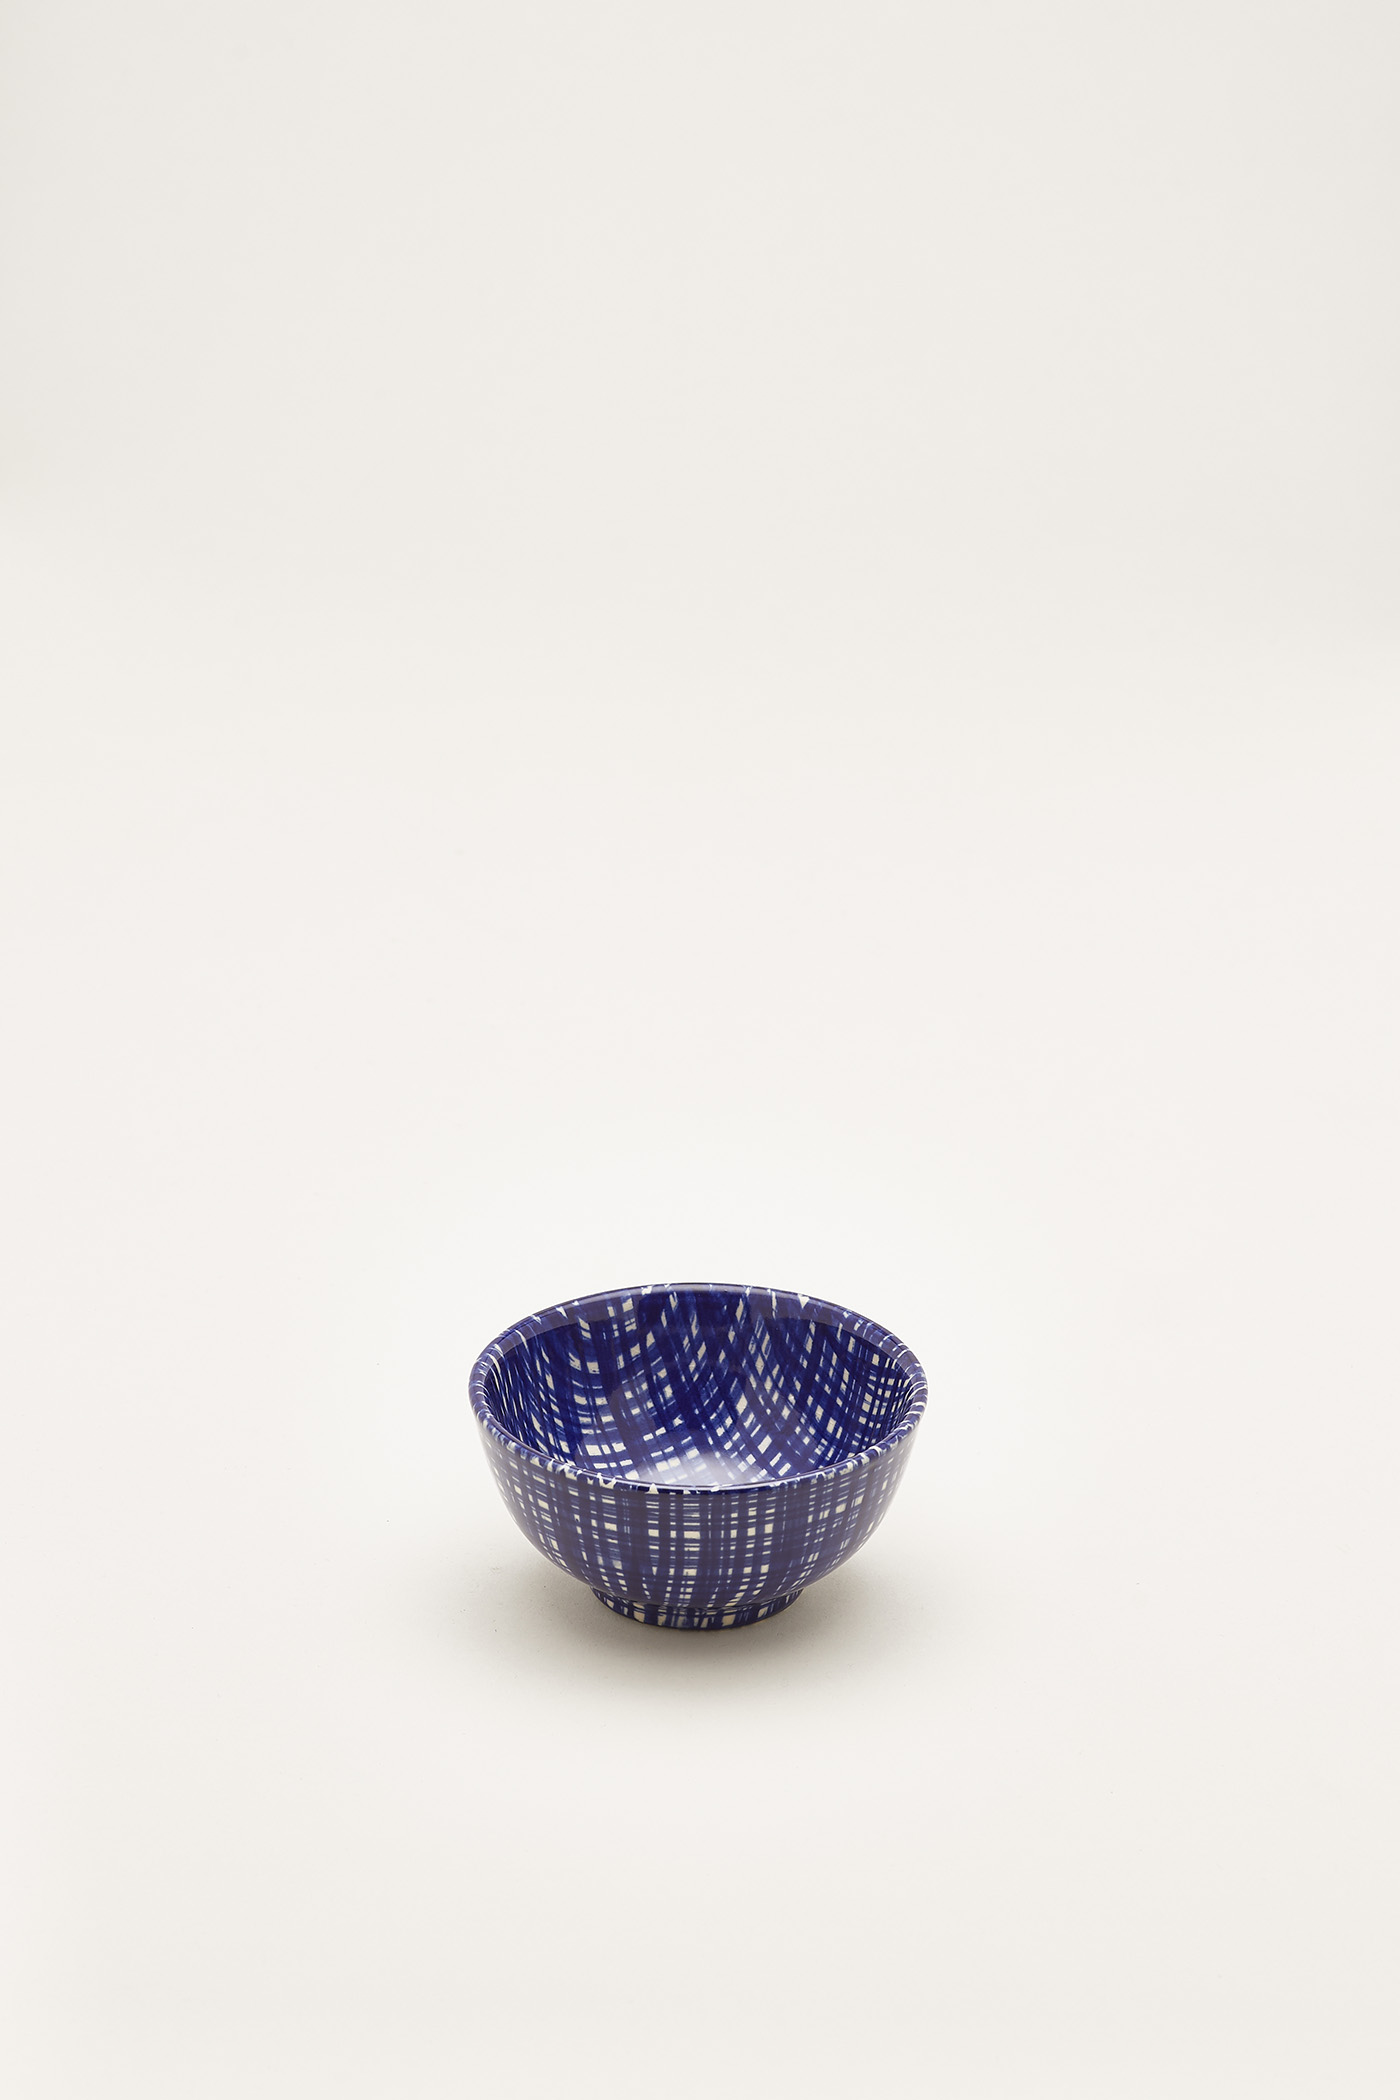 Tuhu Ceramics Rice Bowl